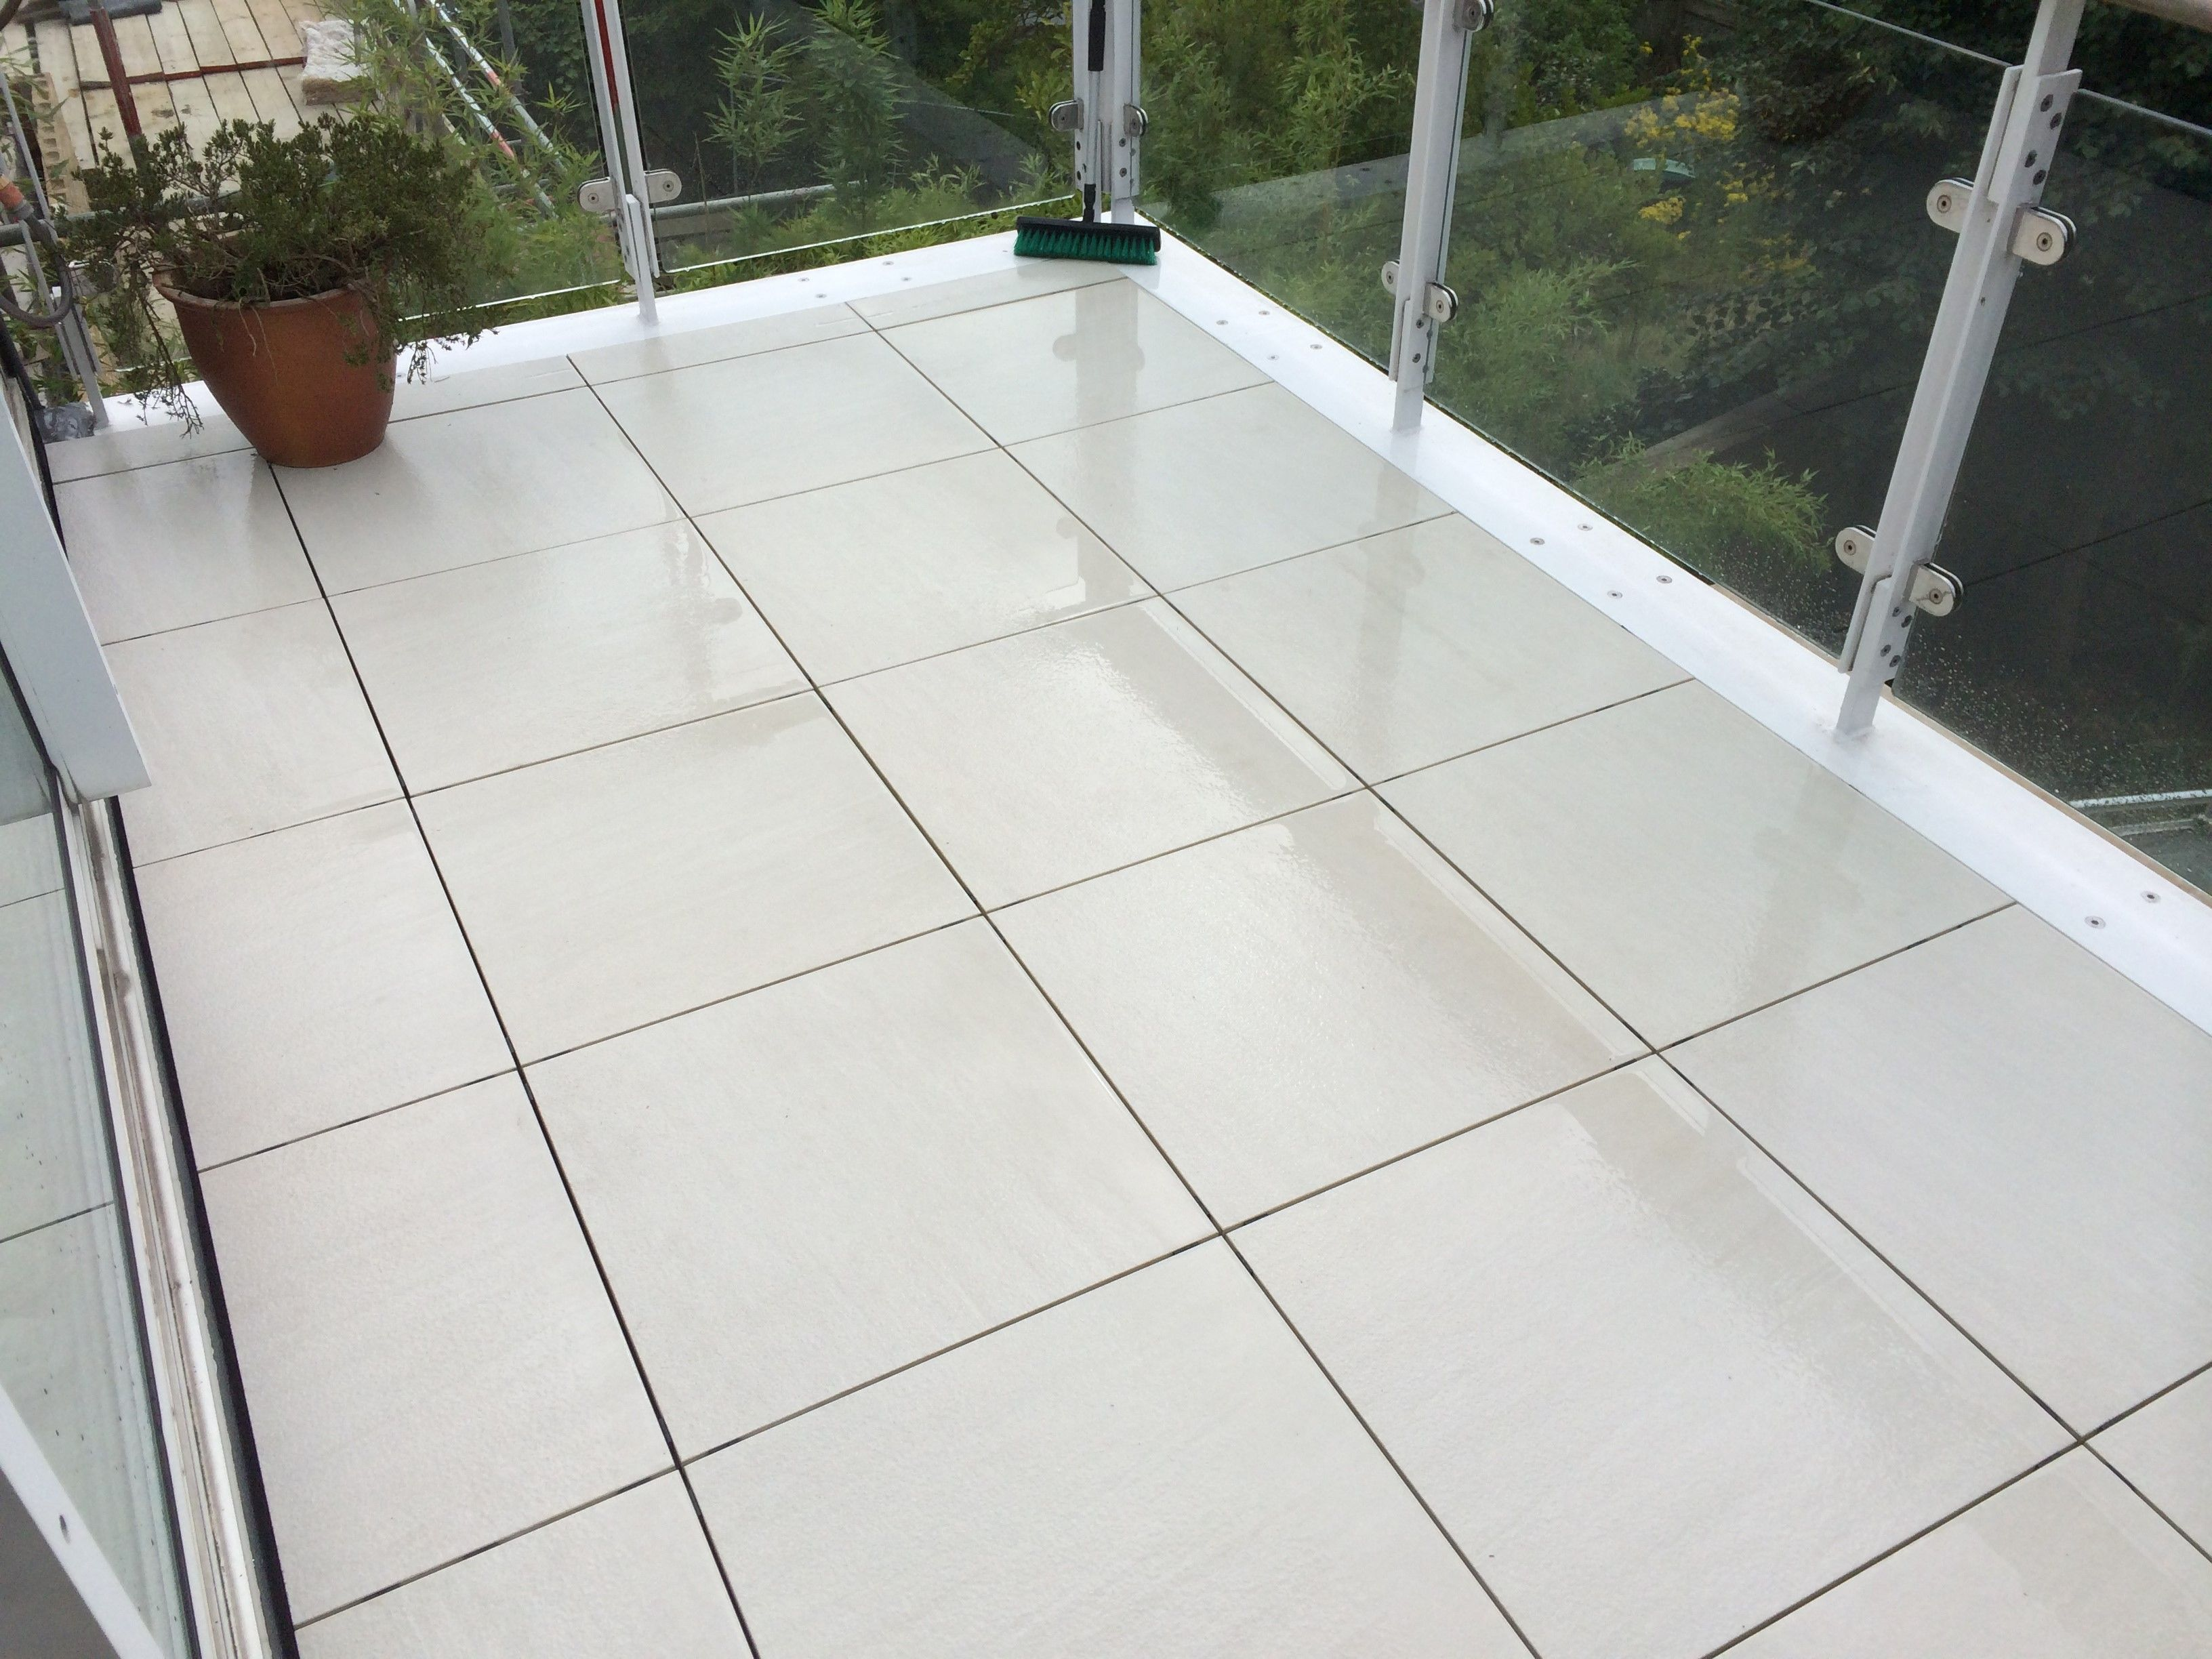 Sandy White installed using self-levelling pedestals in North London # porcelain #paving #luxurymaterials www.exteriorc… | Patio slabs, Outdoor  tiles, Outdoor paving